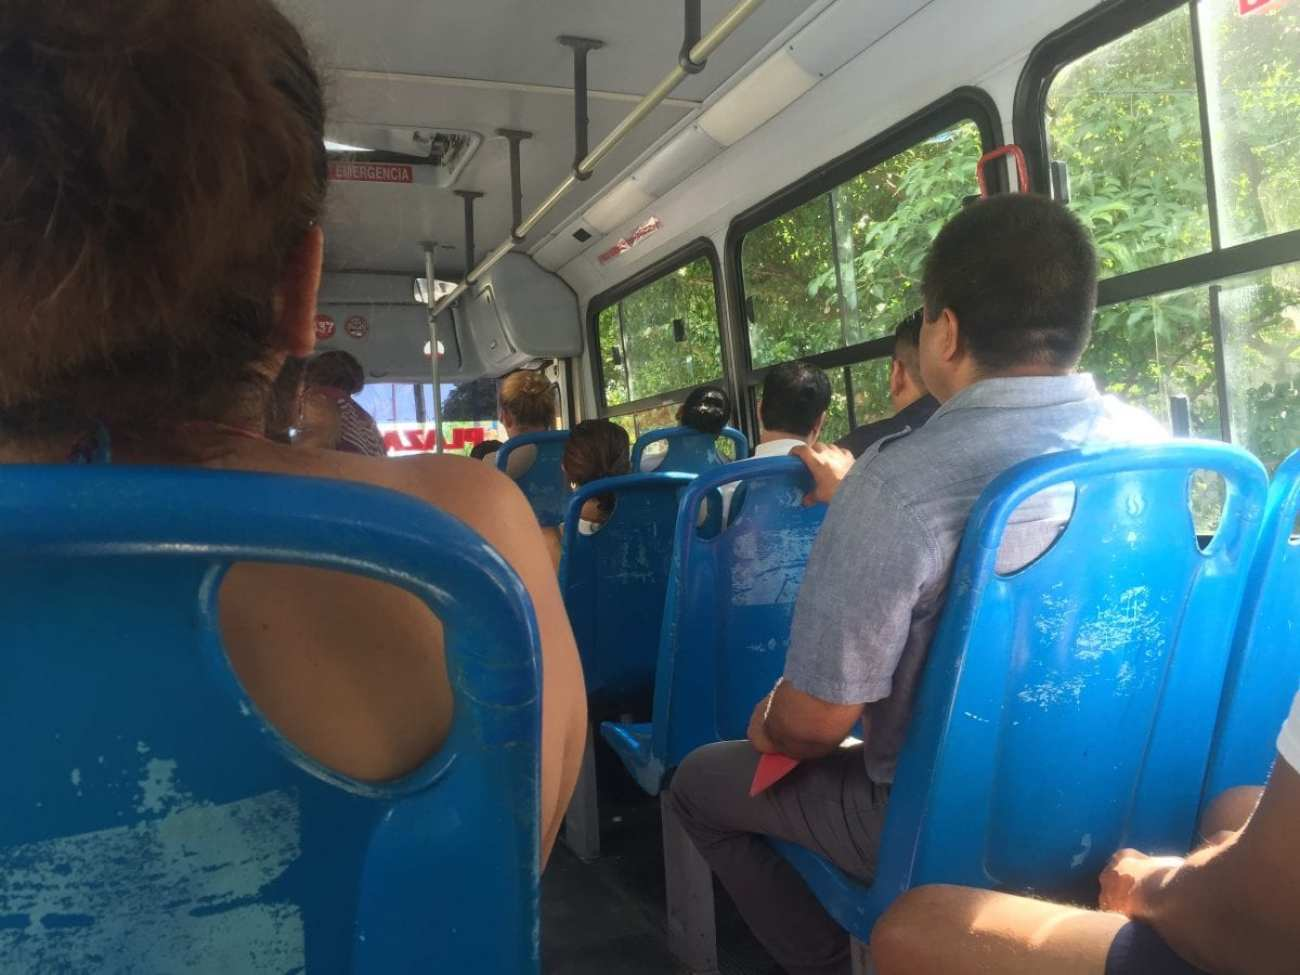 On the Public Bus in Cancun - Things to Do in Cancun Off the Beaten Path